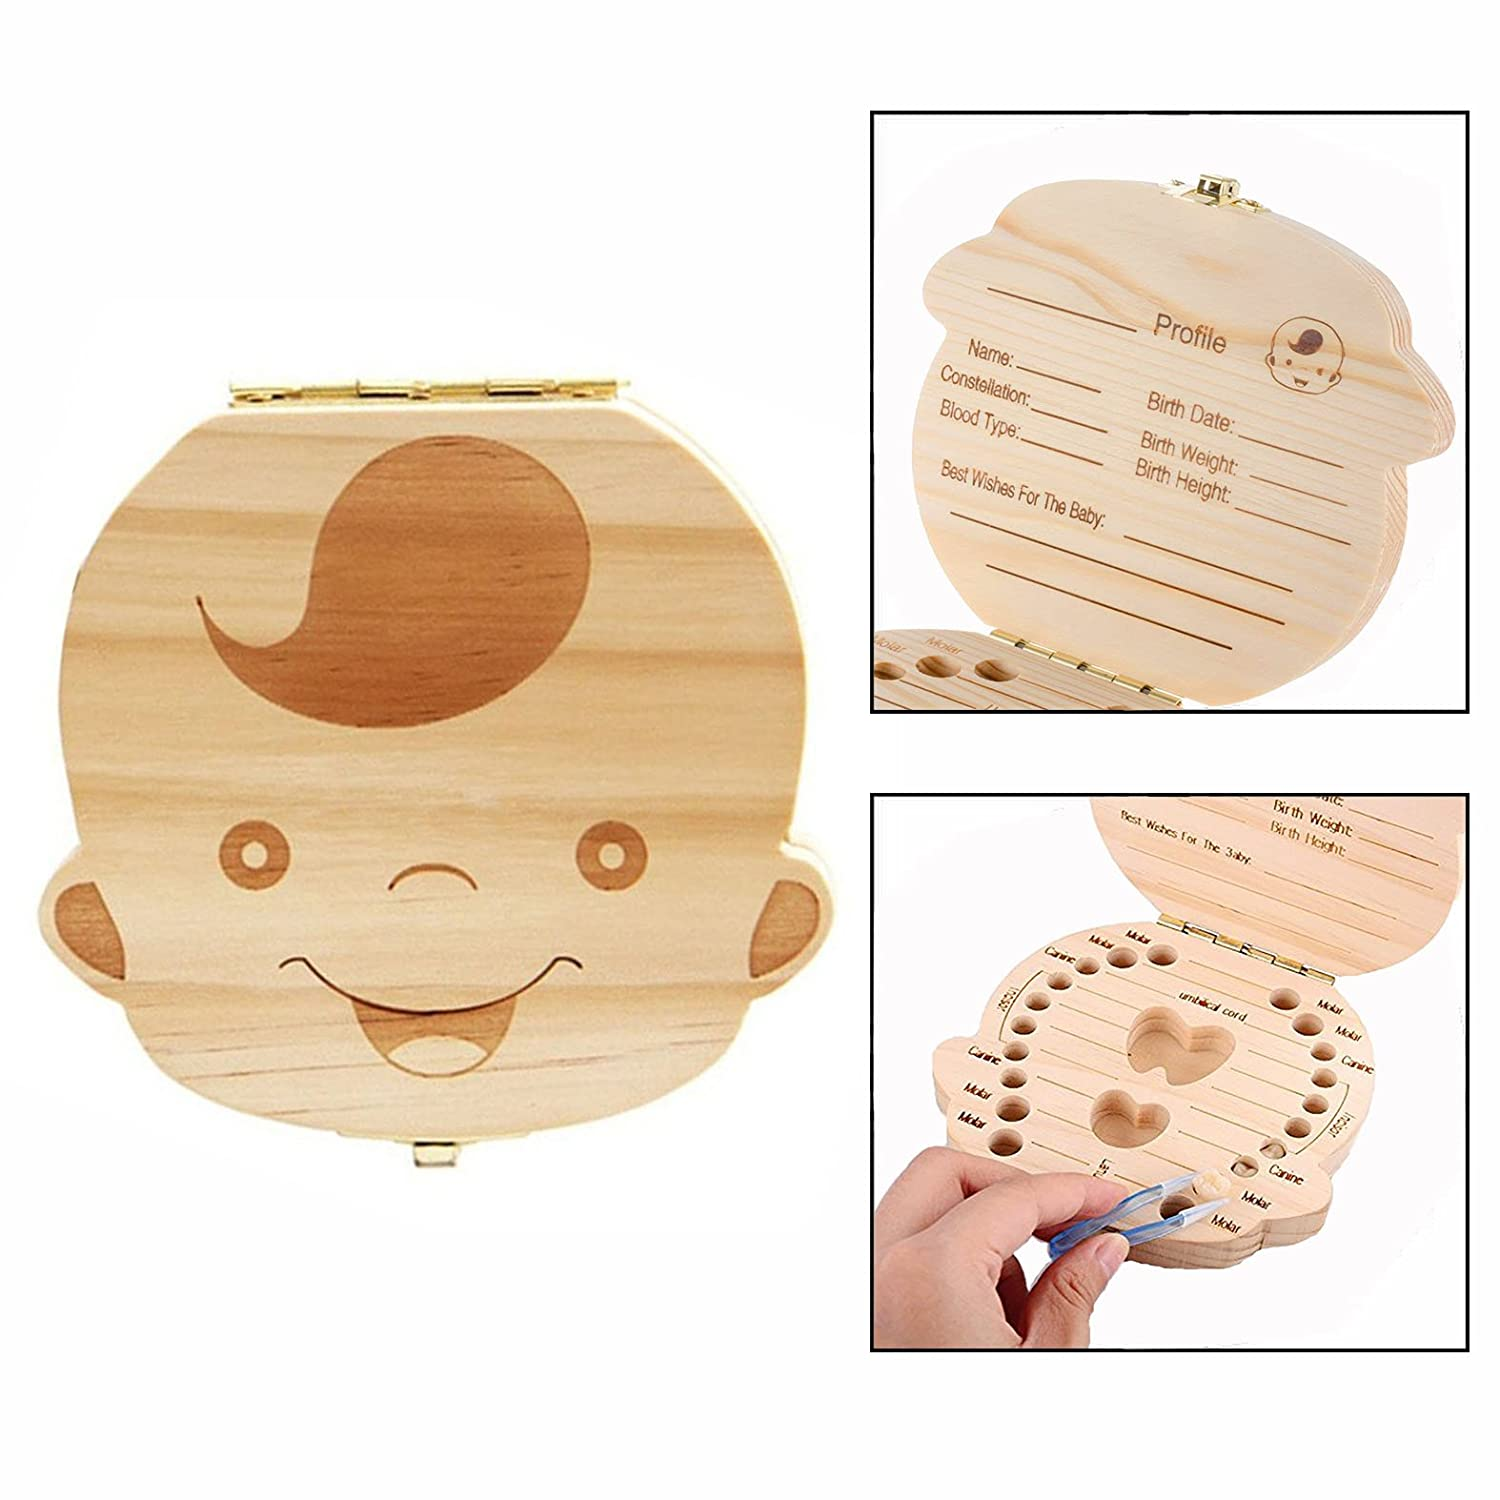 1X Lovely Baby Teeth Save Box Organizer Tooth Collection Souvenir Case Wooden Handmade Keepsake Durable 12.5 * 12.3 * 3 cm (Girl's) Txyk